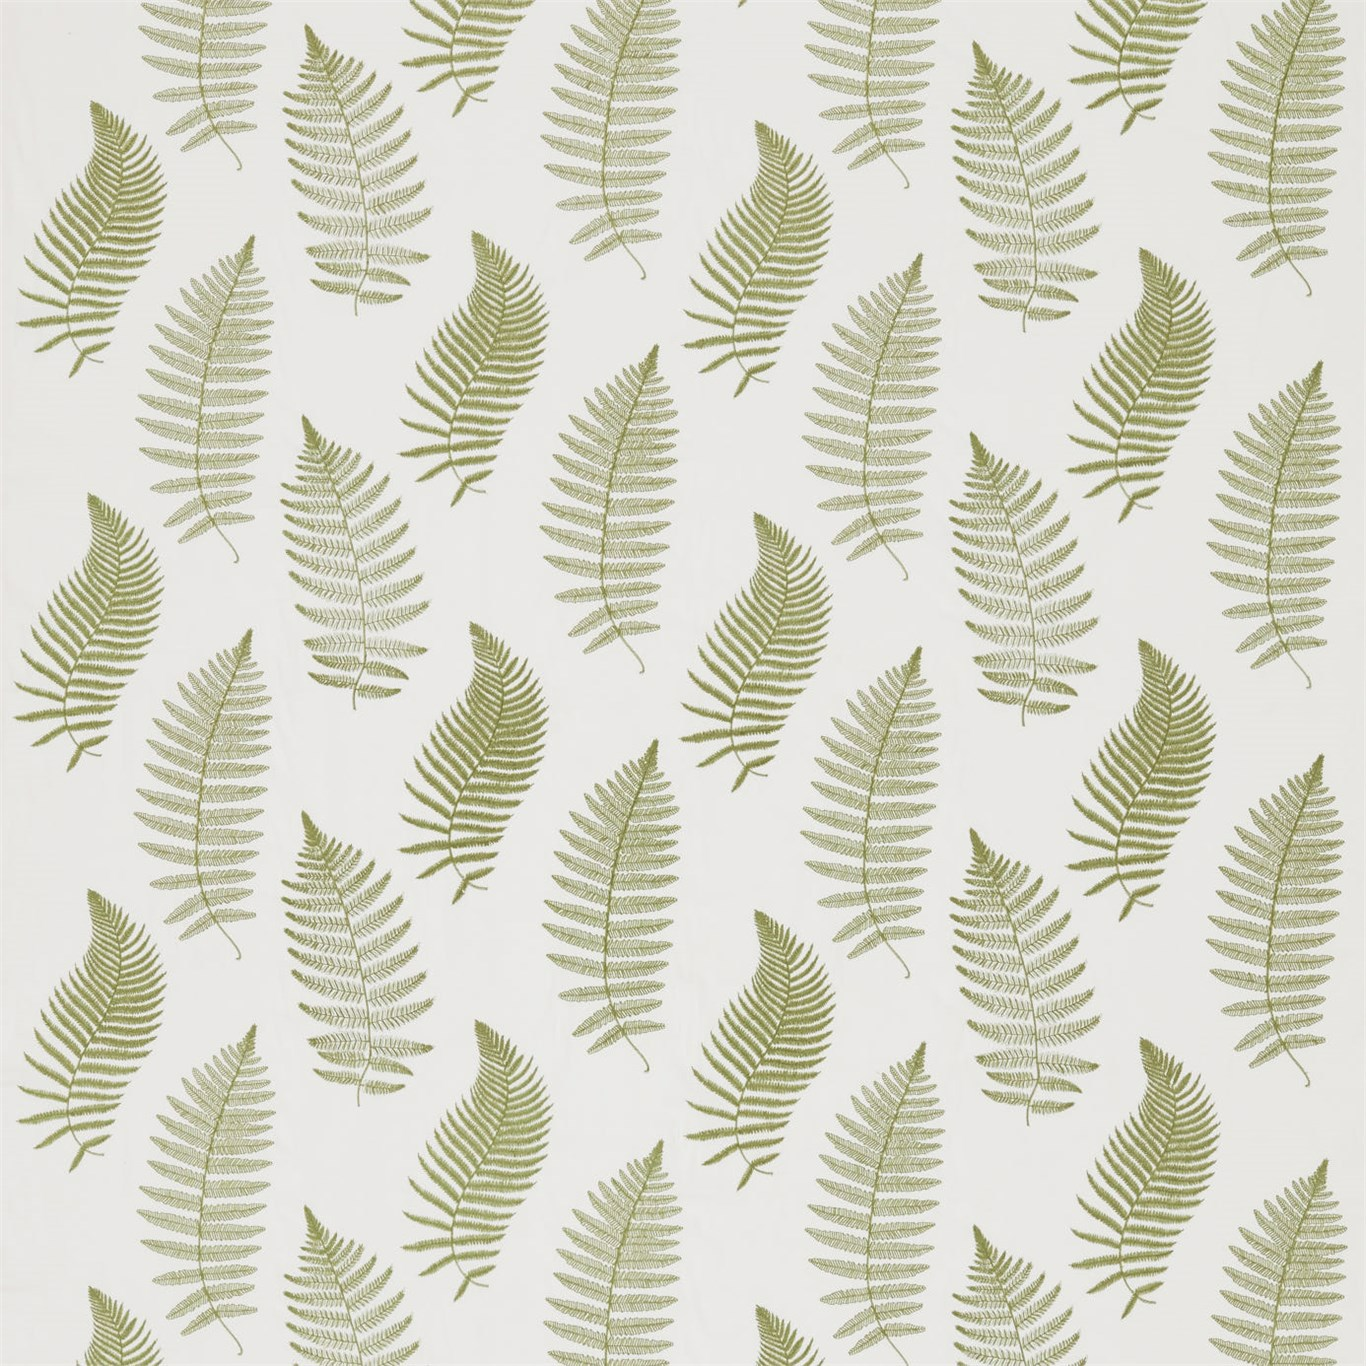 Fern Embroidery by SAN